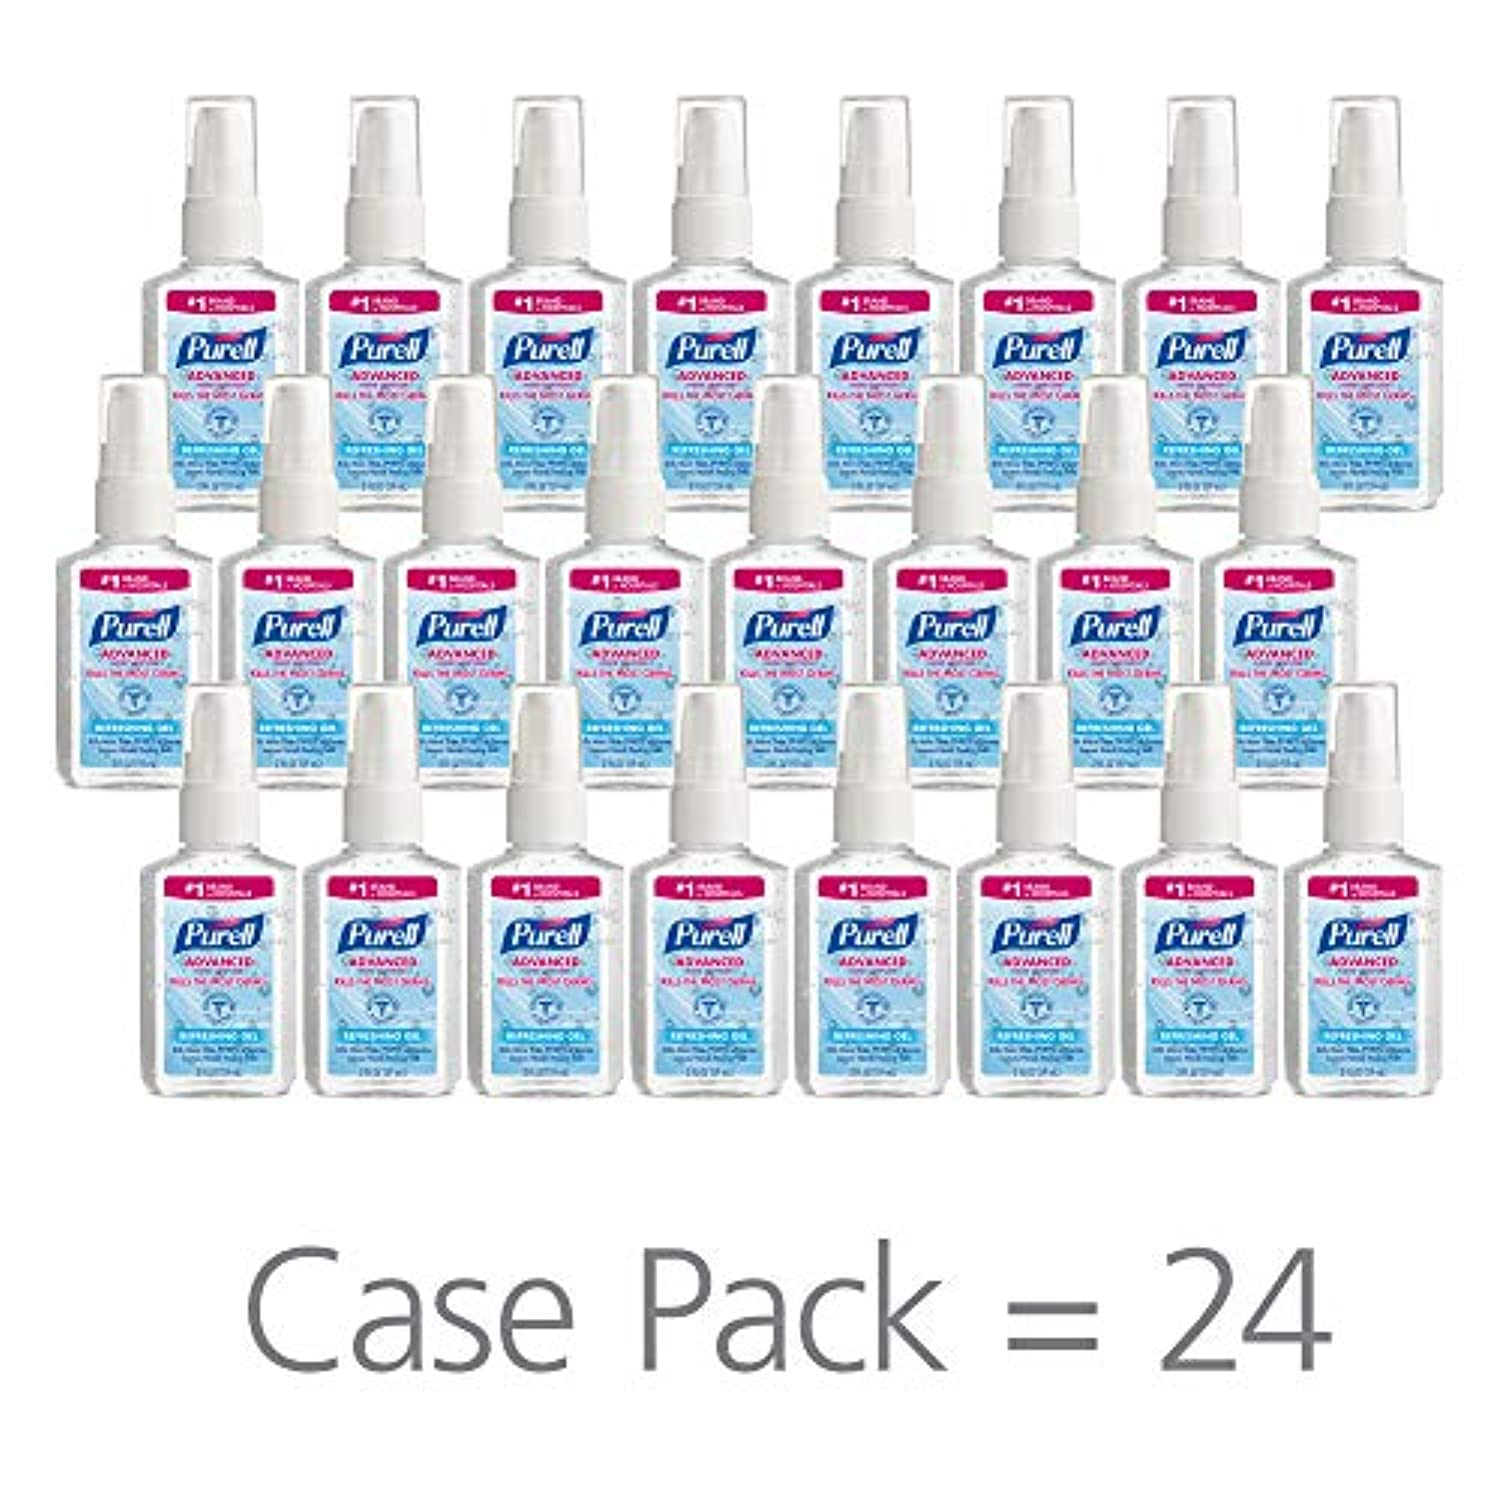 削減挨拶引退するPURELL 9606-24 Advanced Instant Hand Sanitizer, 2 fl. oz. Pump Bottle (Case of 24),2 fl. Oz by Purell